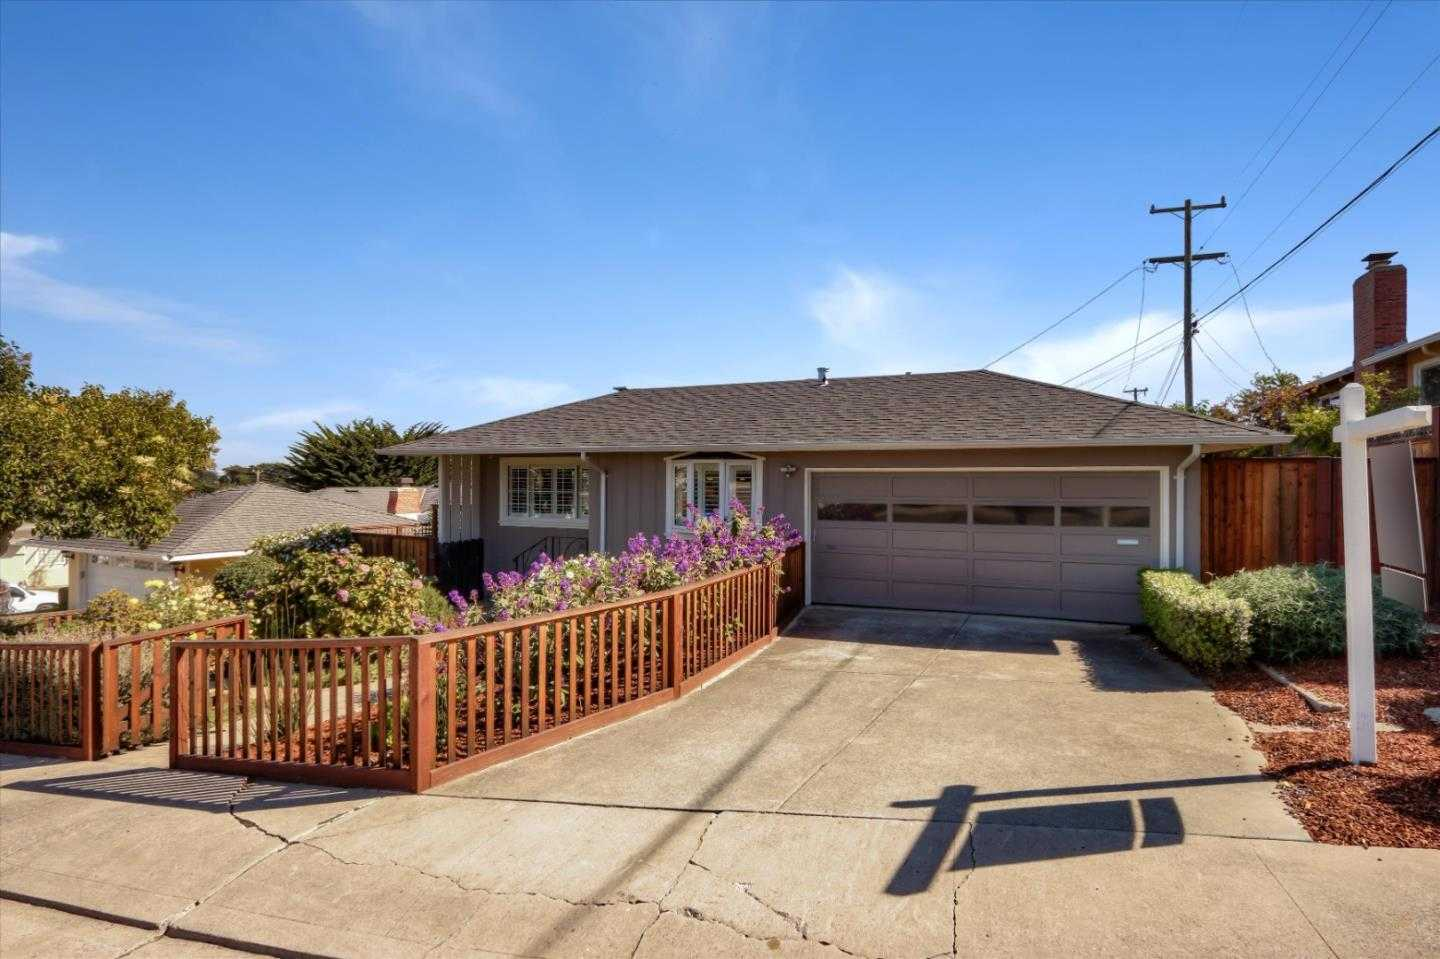 $1,288,000 - 3Br/2Ba -  for Sale in South San Francisco